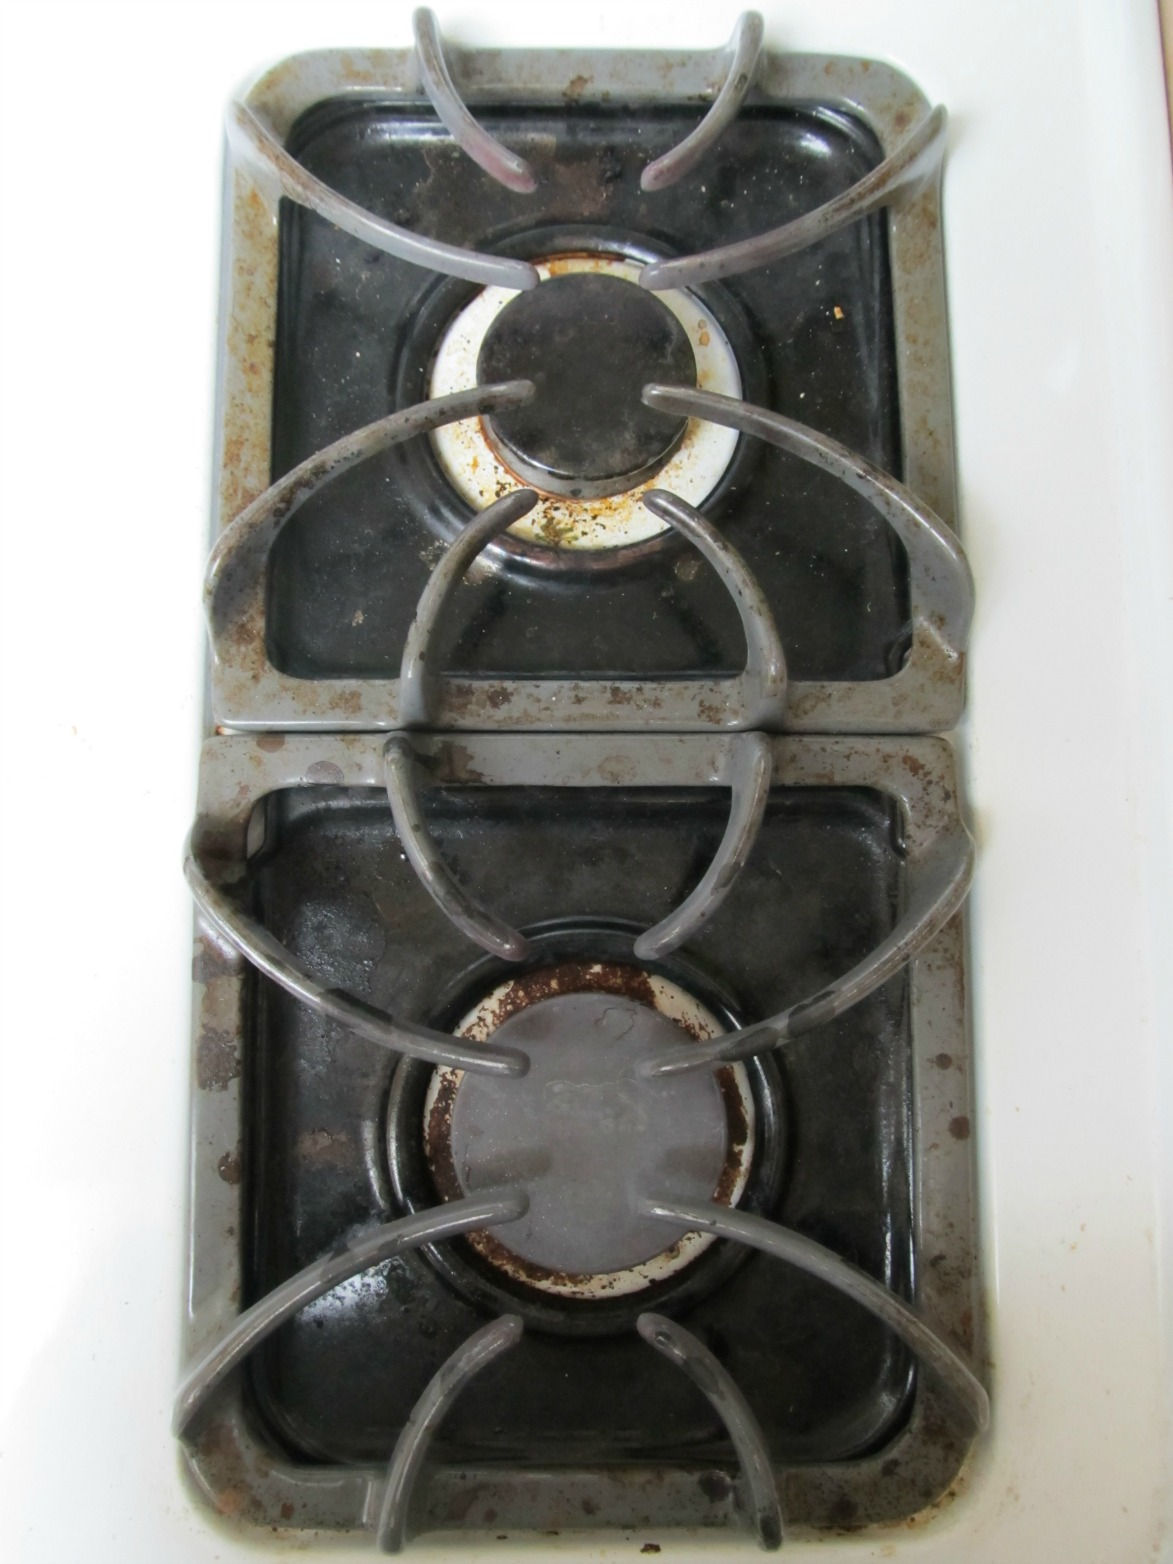 Easy Off Stove Top Cleaner: How To Clean Your Stove The Easy Way